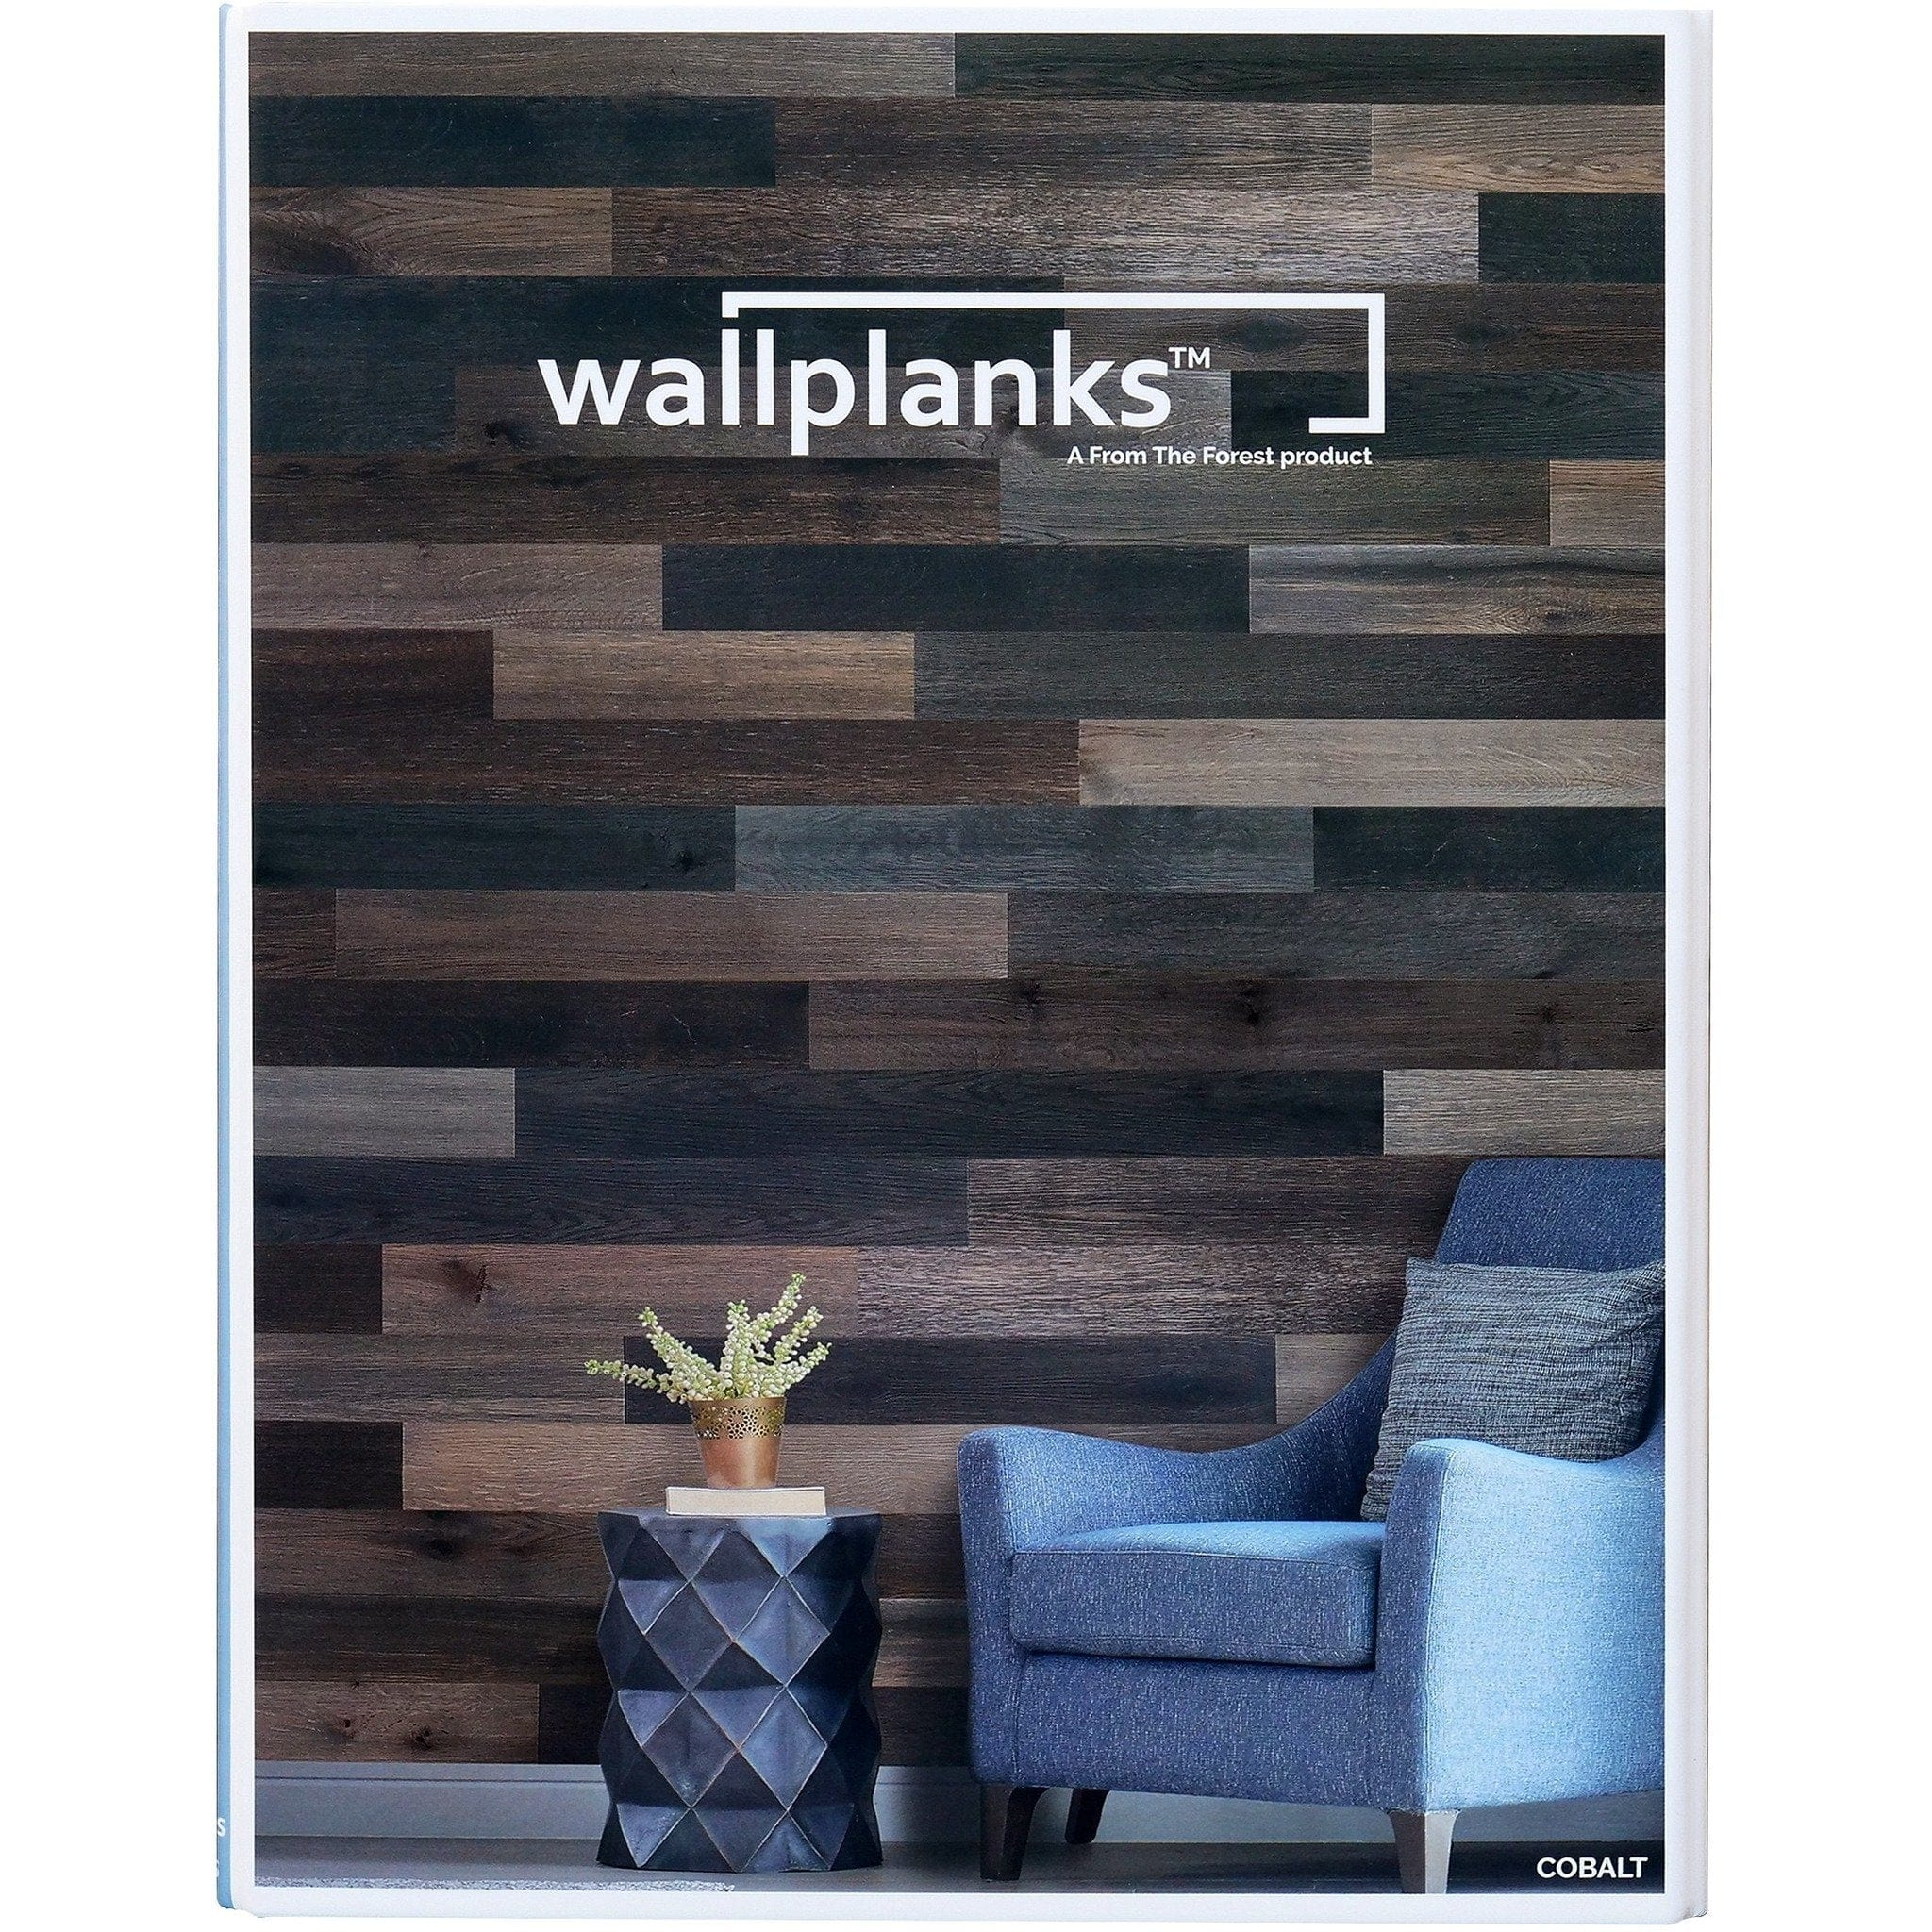 Architectural Binder - Wallplanks